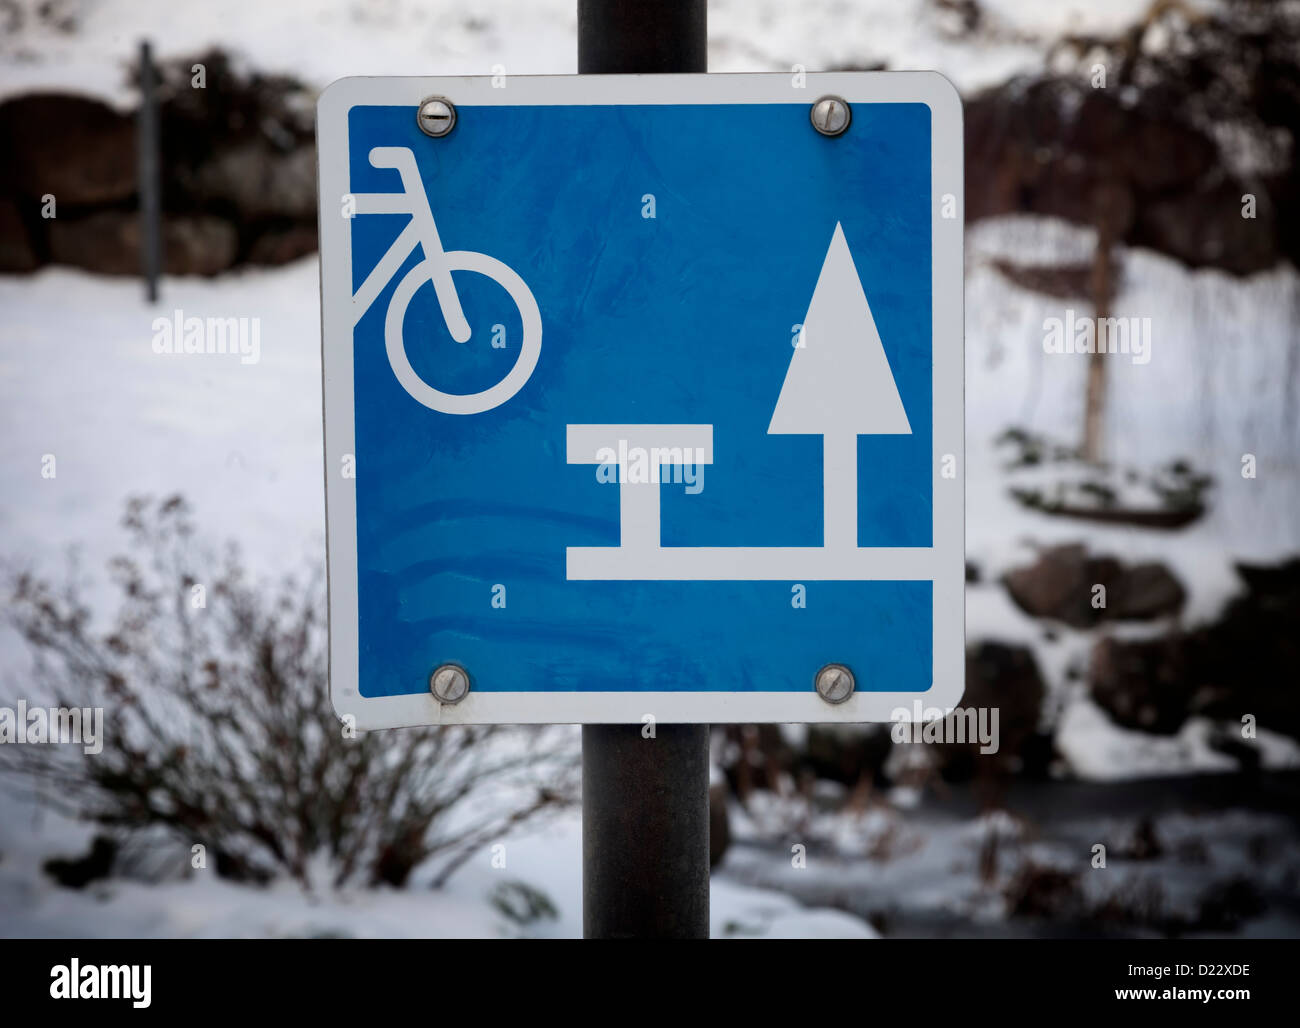 Sign showing resting place for cyclists - Stock Image